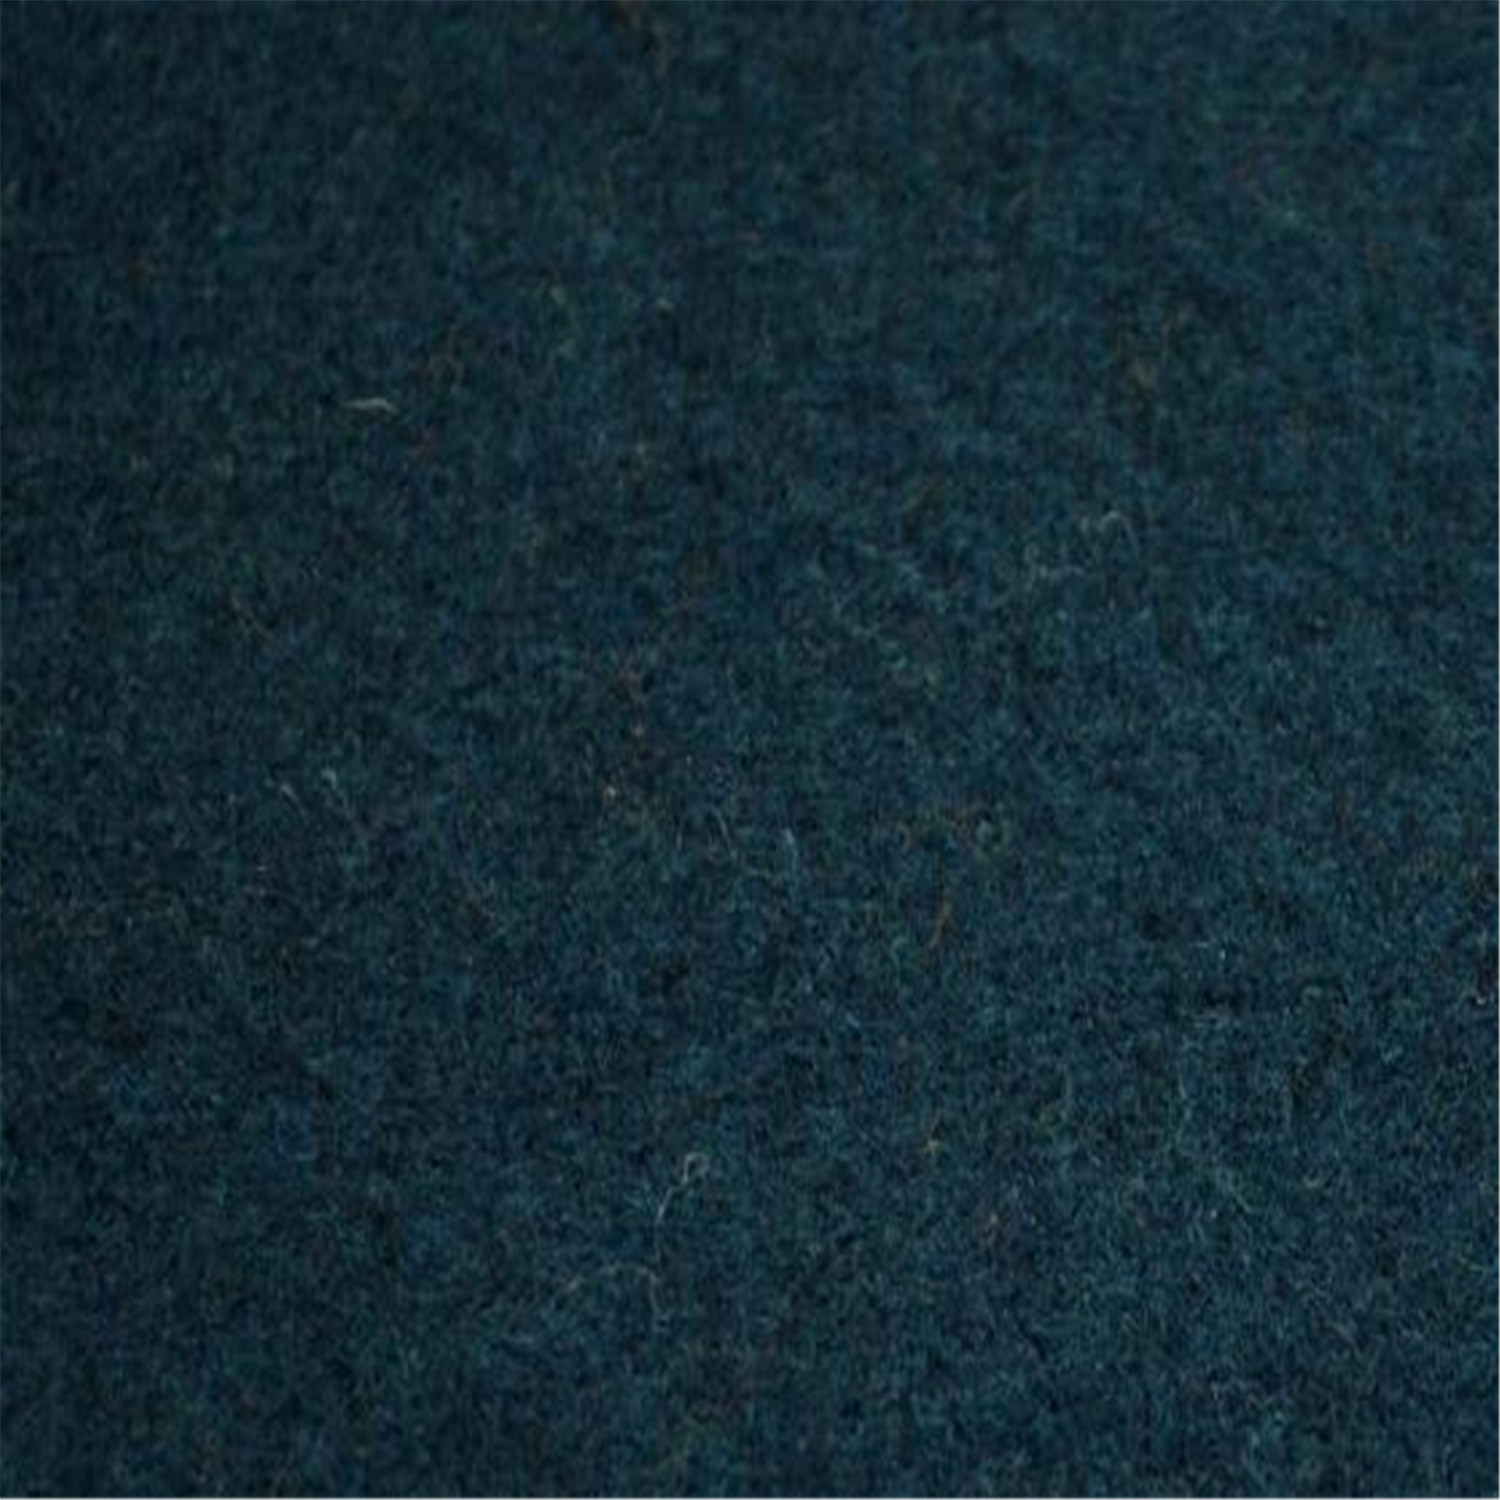 Solid Flannel Wool Fabric for Clothes, Suit Fabric, Garment Fabric, Textile Fabric